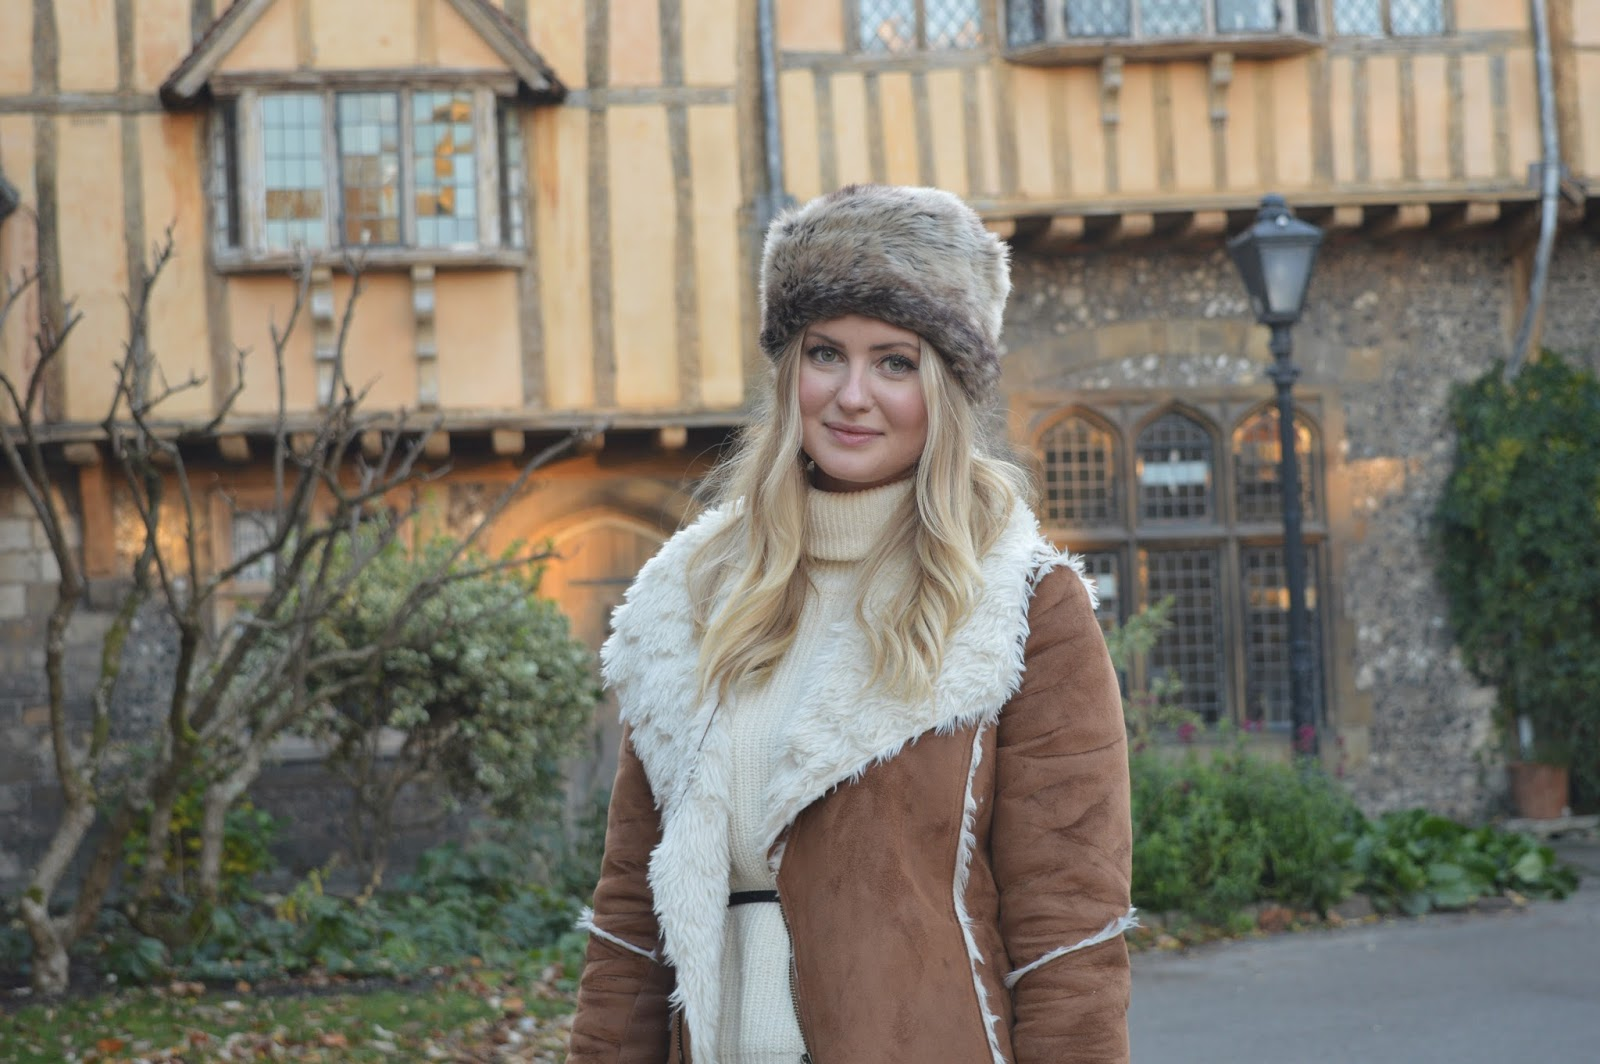 Winter fashion ideas, fashion bloggers, Hampshire bloggers, style bloggers, fashion blogs